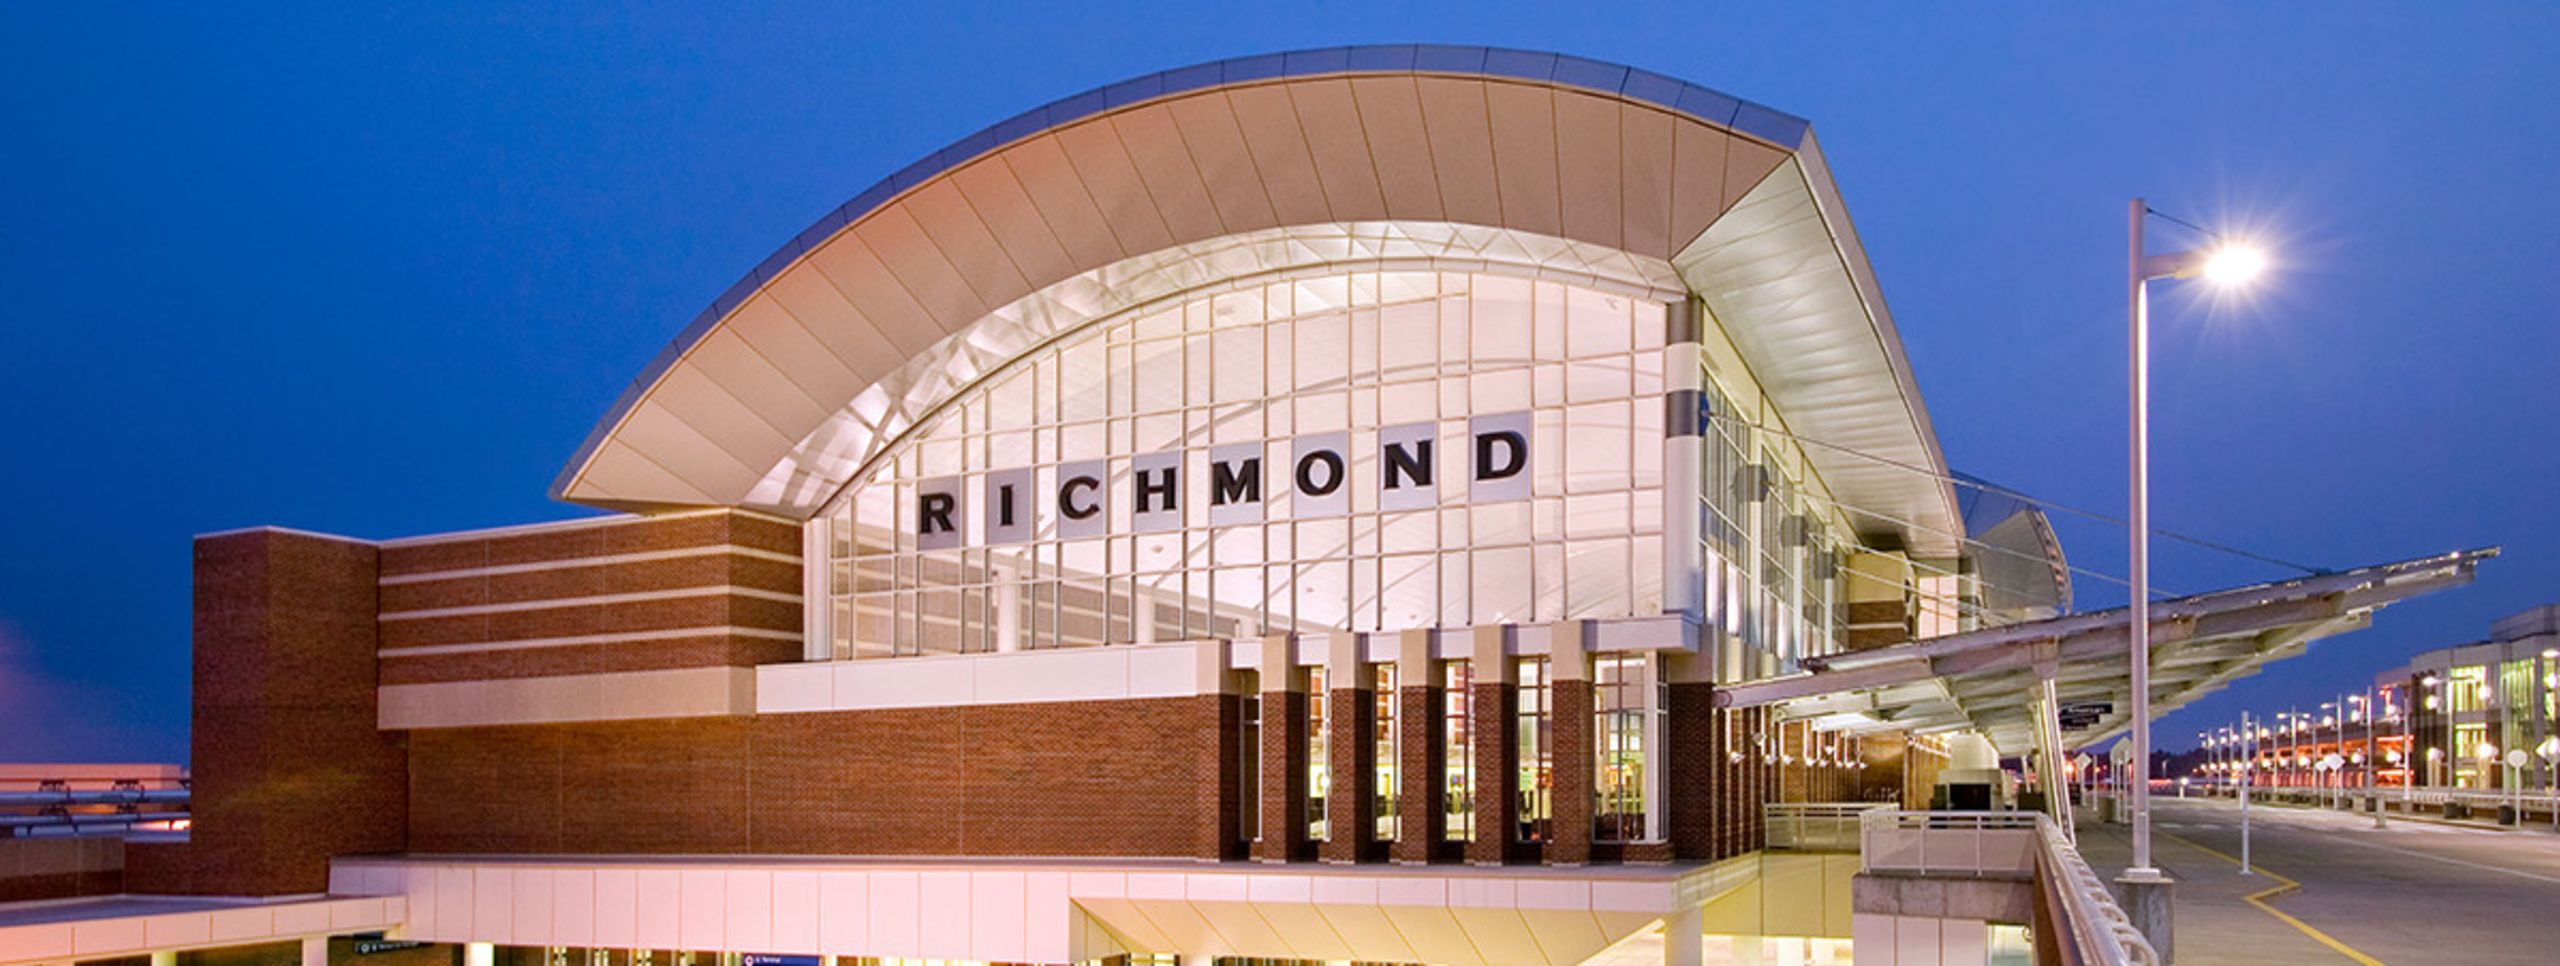 Easy access to and from the Richmond region